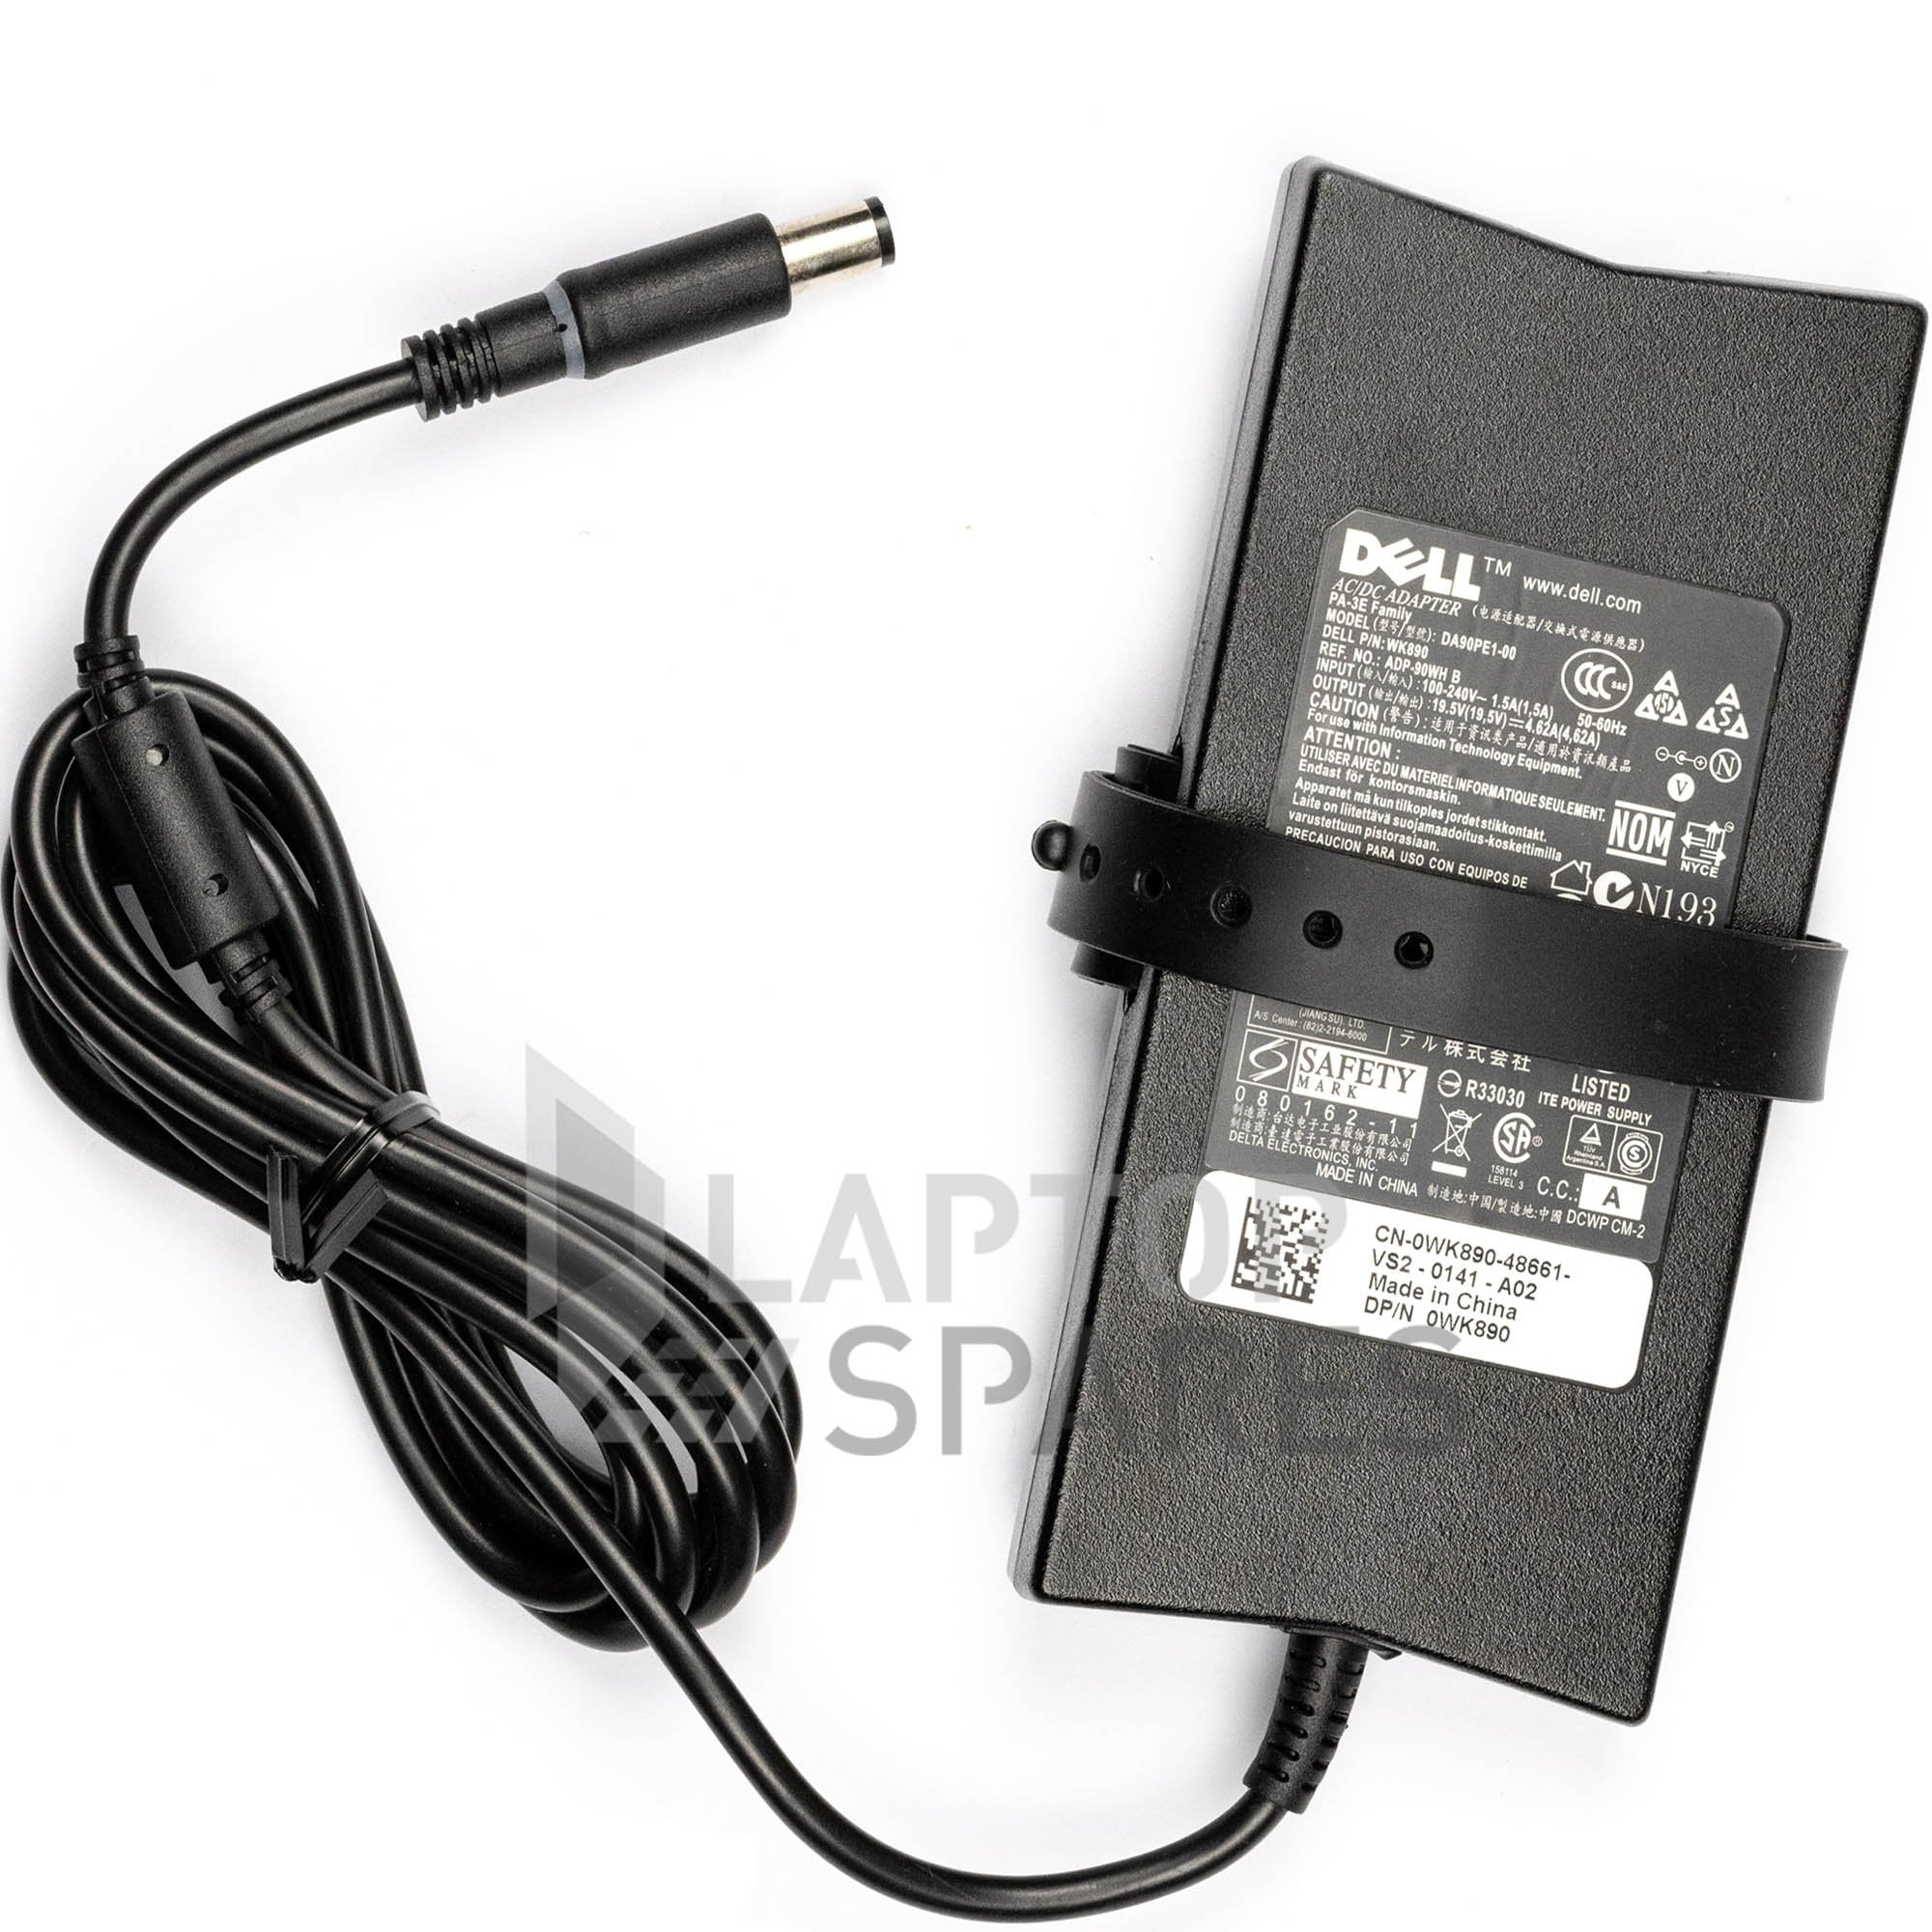 Dell Inspiron 5523 5525 5537 Laptop Slim AC Adapter Charger